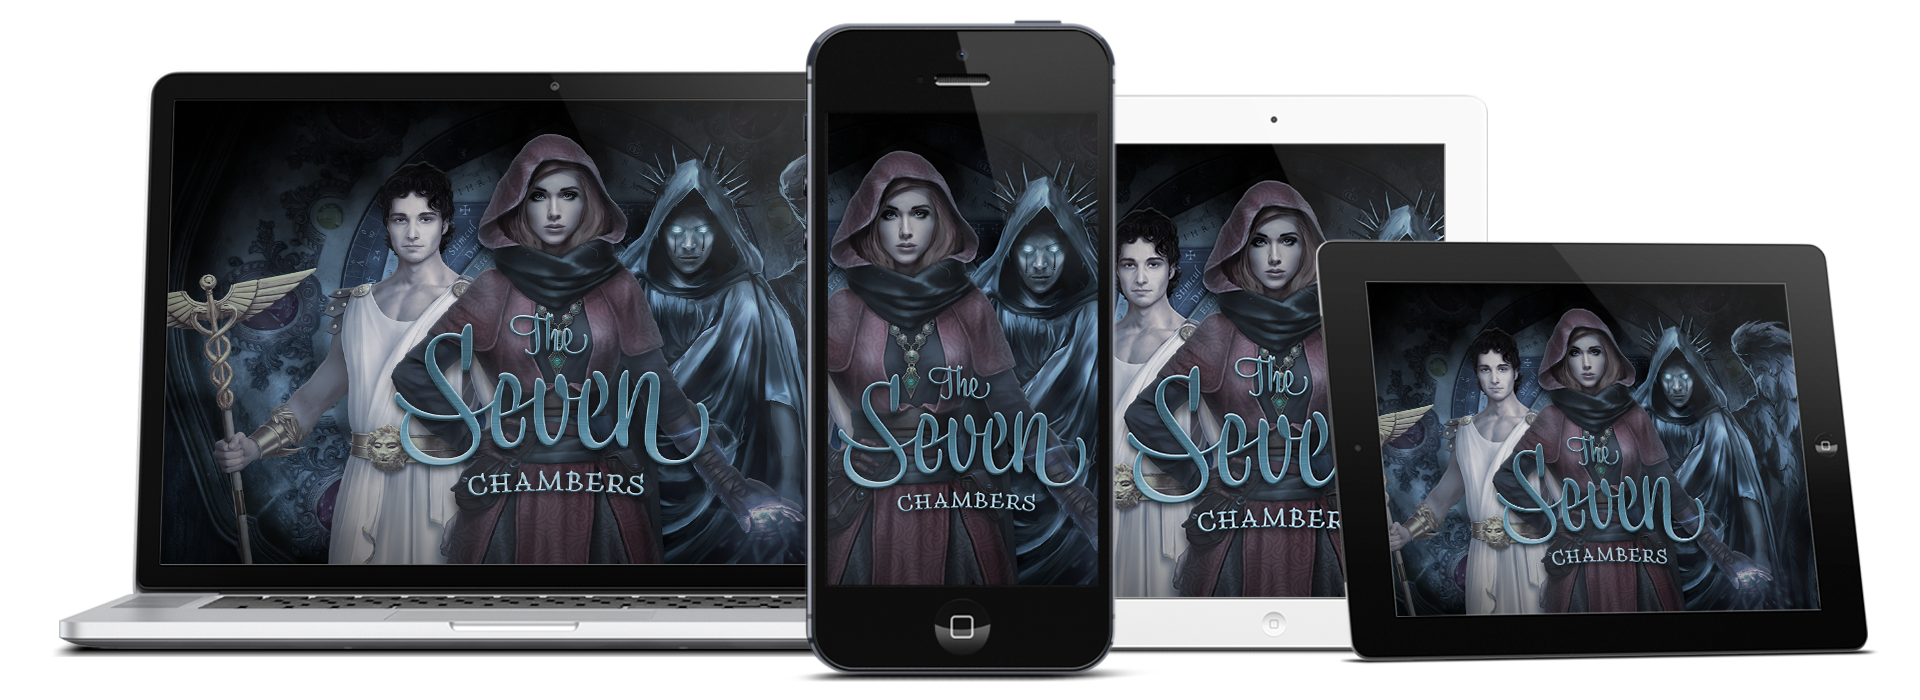 The Seven Chambers Devices